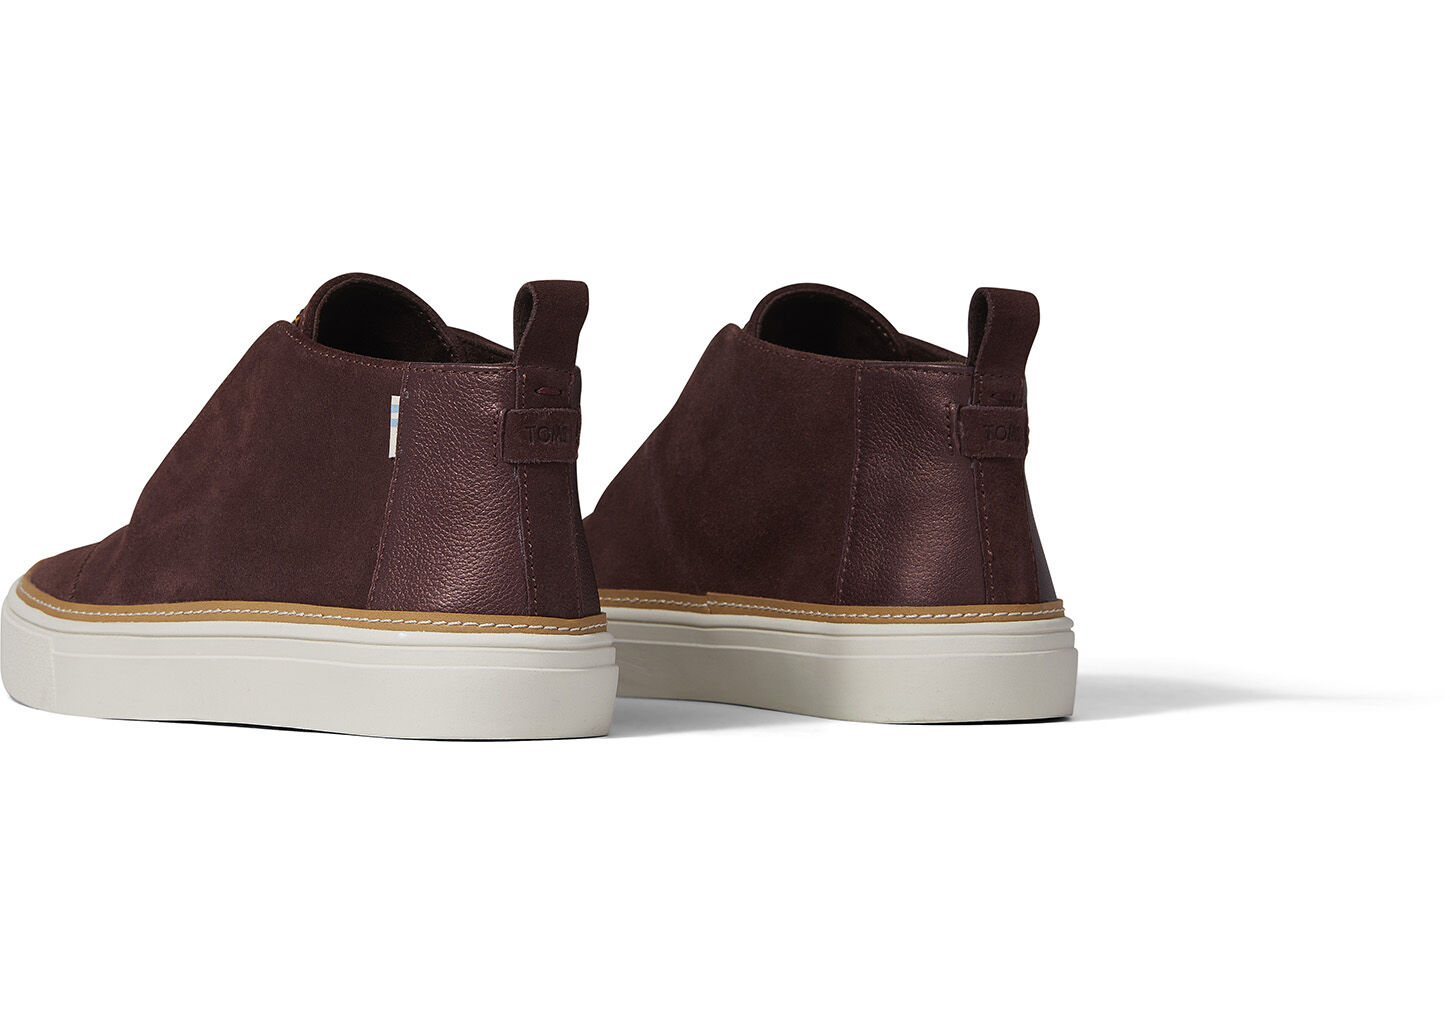 Forest Brown Suede and Pearlized